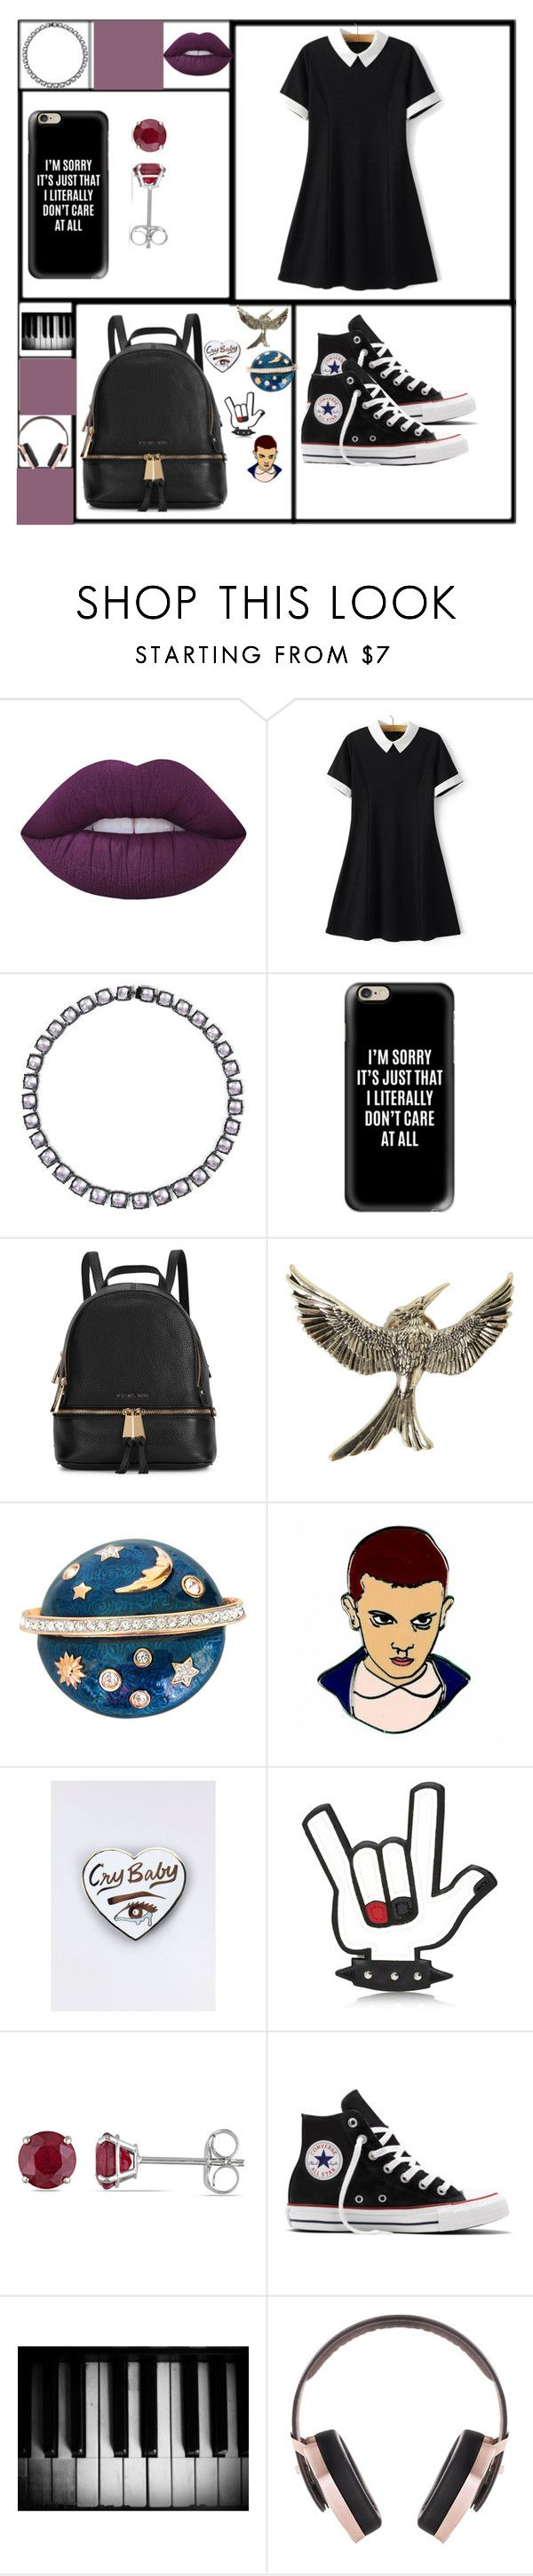 """""""Eh"""" by mysticalmonster15 ❤ liked on Polyvore featuring Lime Crime, WithChic, Larkspur & Hawk, Casetify, Michael Kors, Swarovski, Dsquared2, Allurez, Converse and Pryma"""